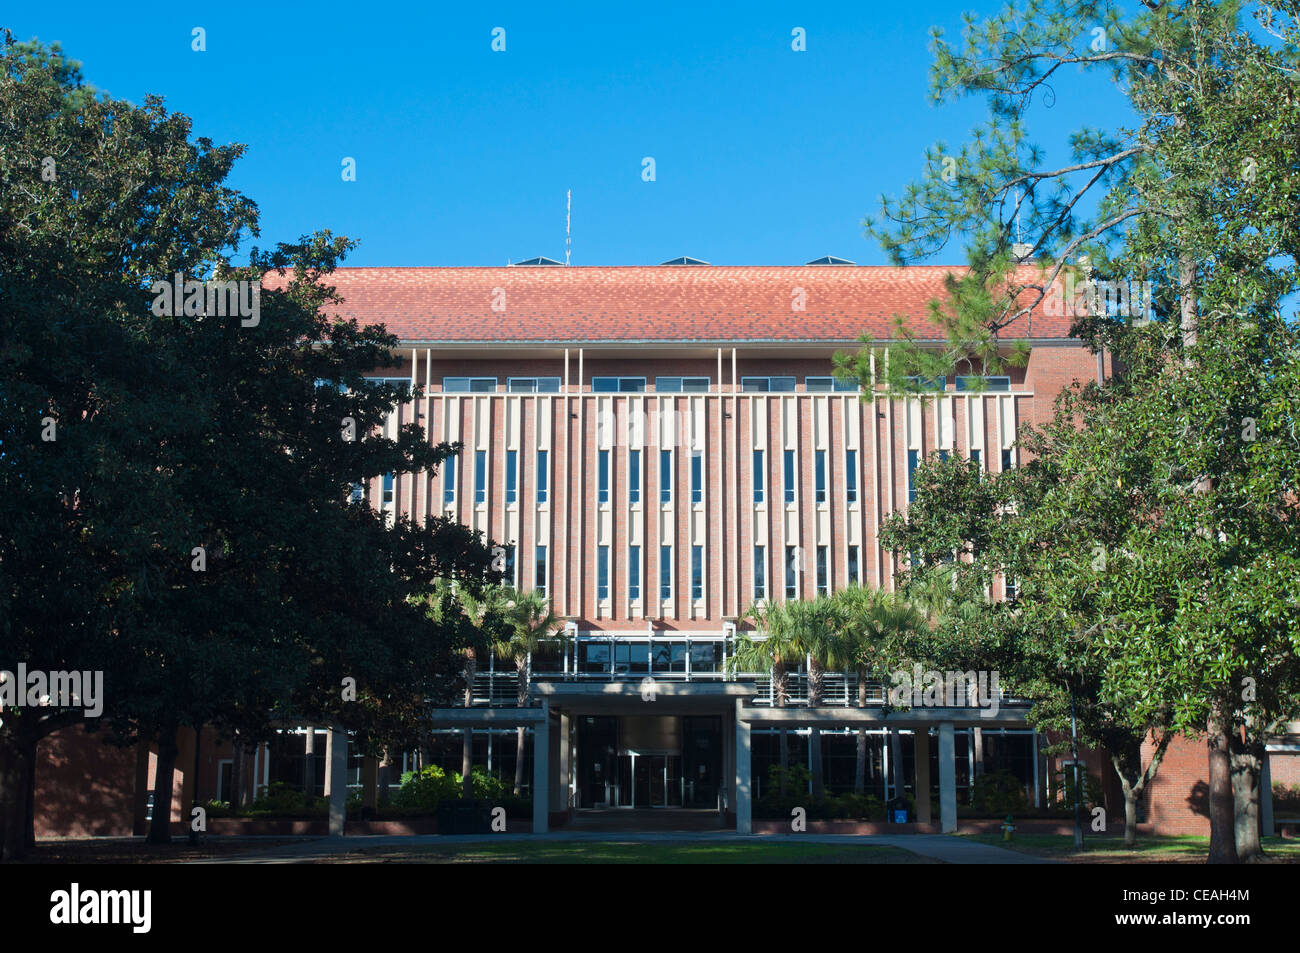 Library West building,  University of Florida, Gainesville, Florida, USA, United States, North America - Stock Image